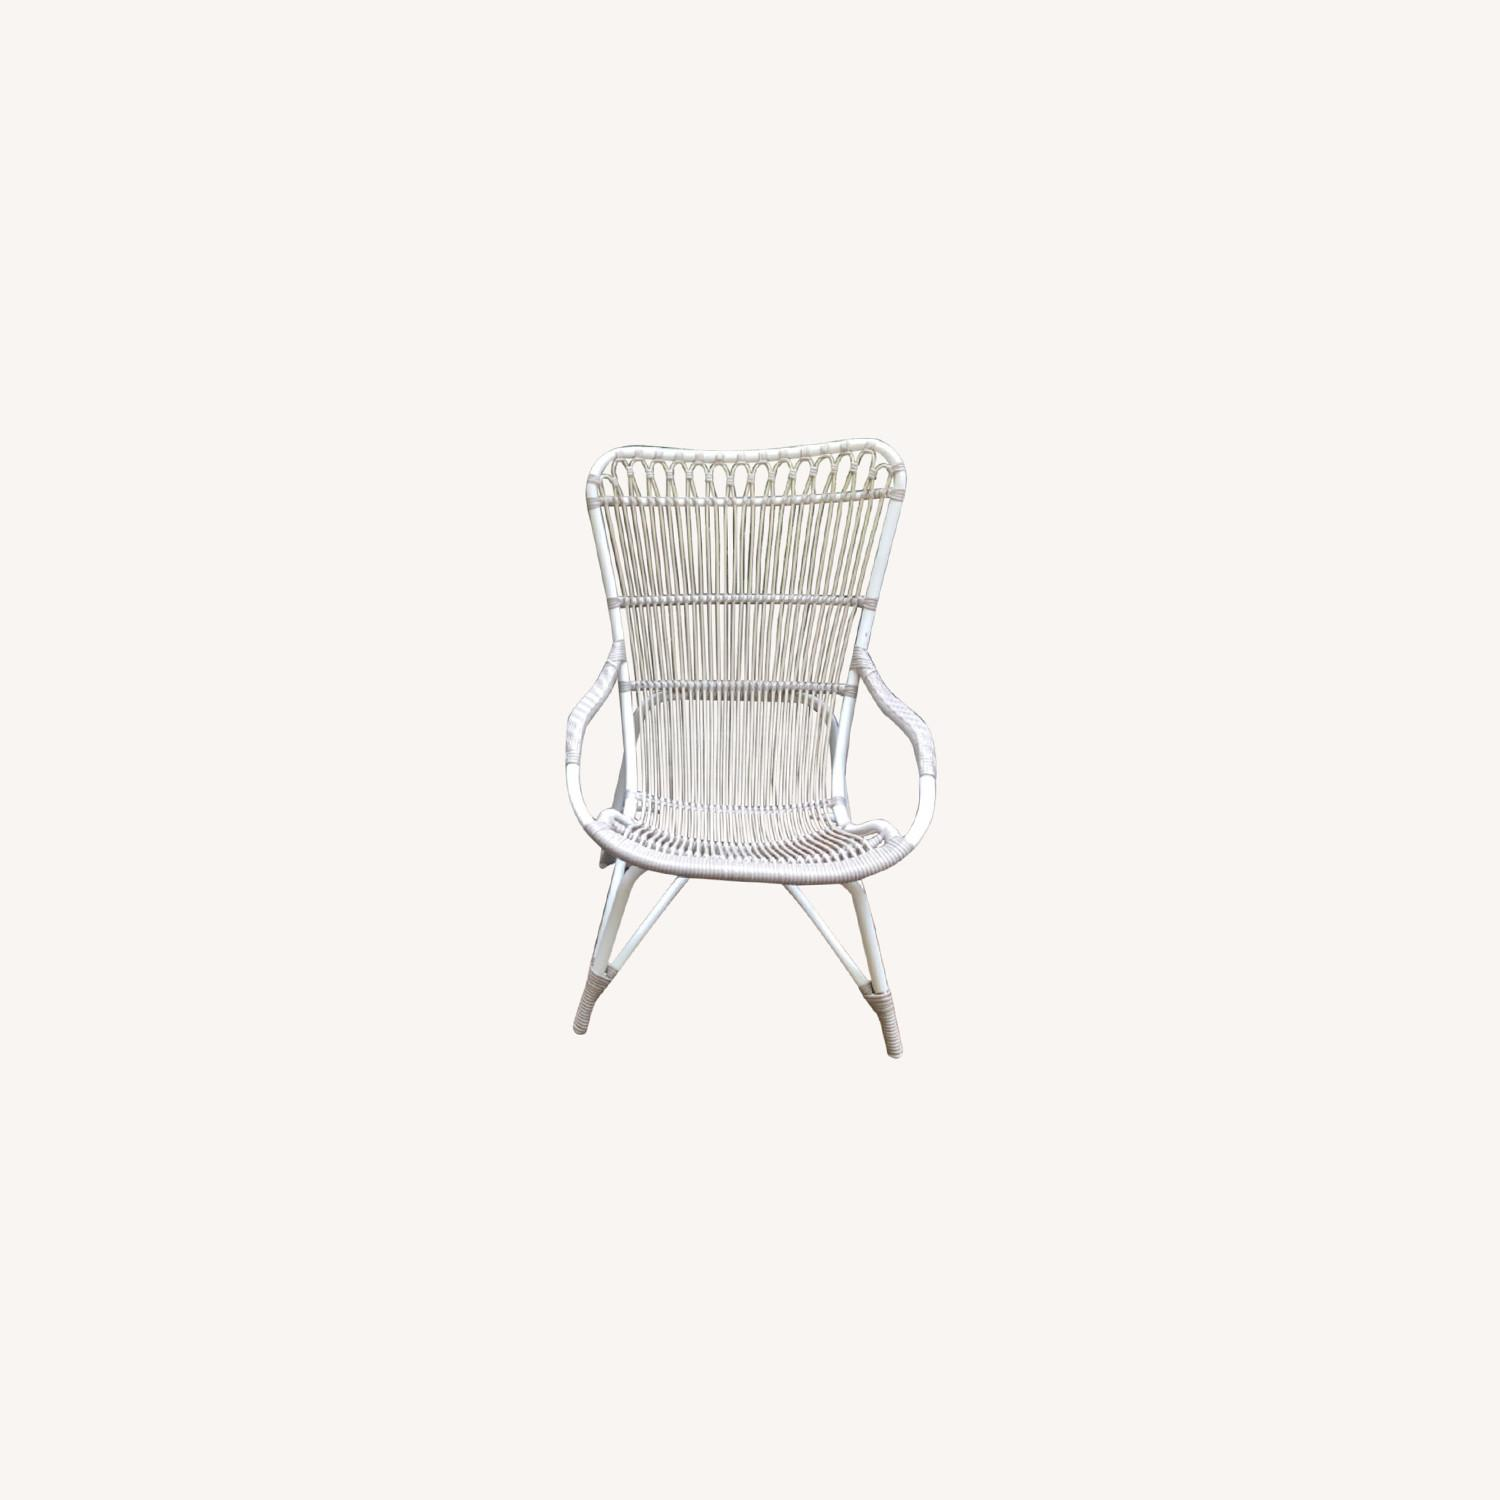 Pair Sika Design Rattan Outdoor Chairs - image-0